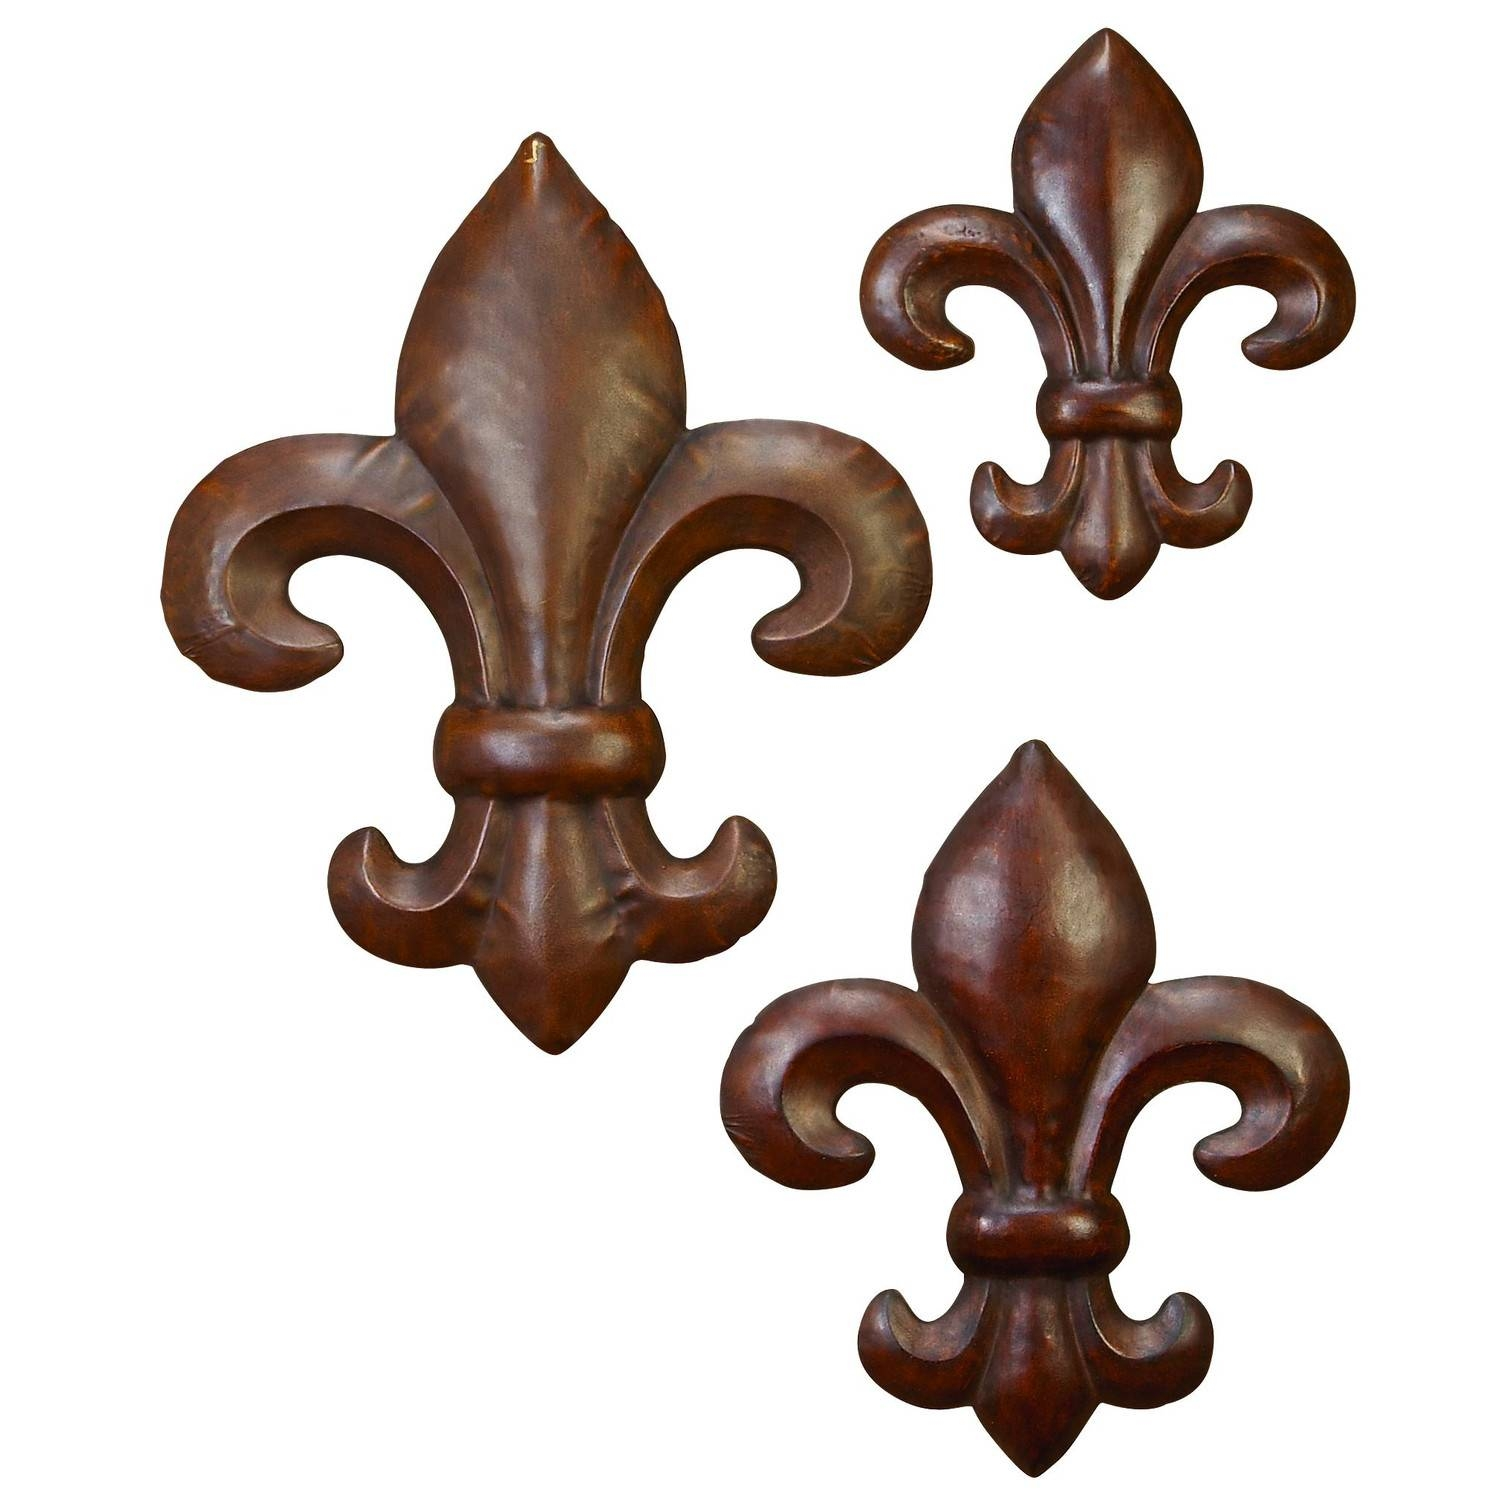 Fleur De Lis Wall Decor With Latest Fleur De Lis Metal Wall Art (View 8 of 25)